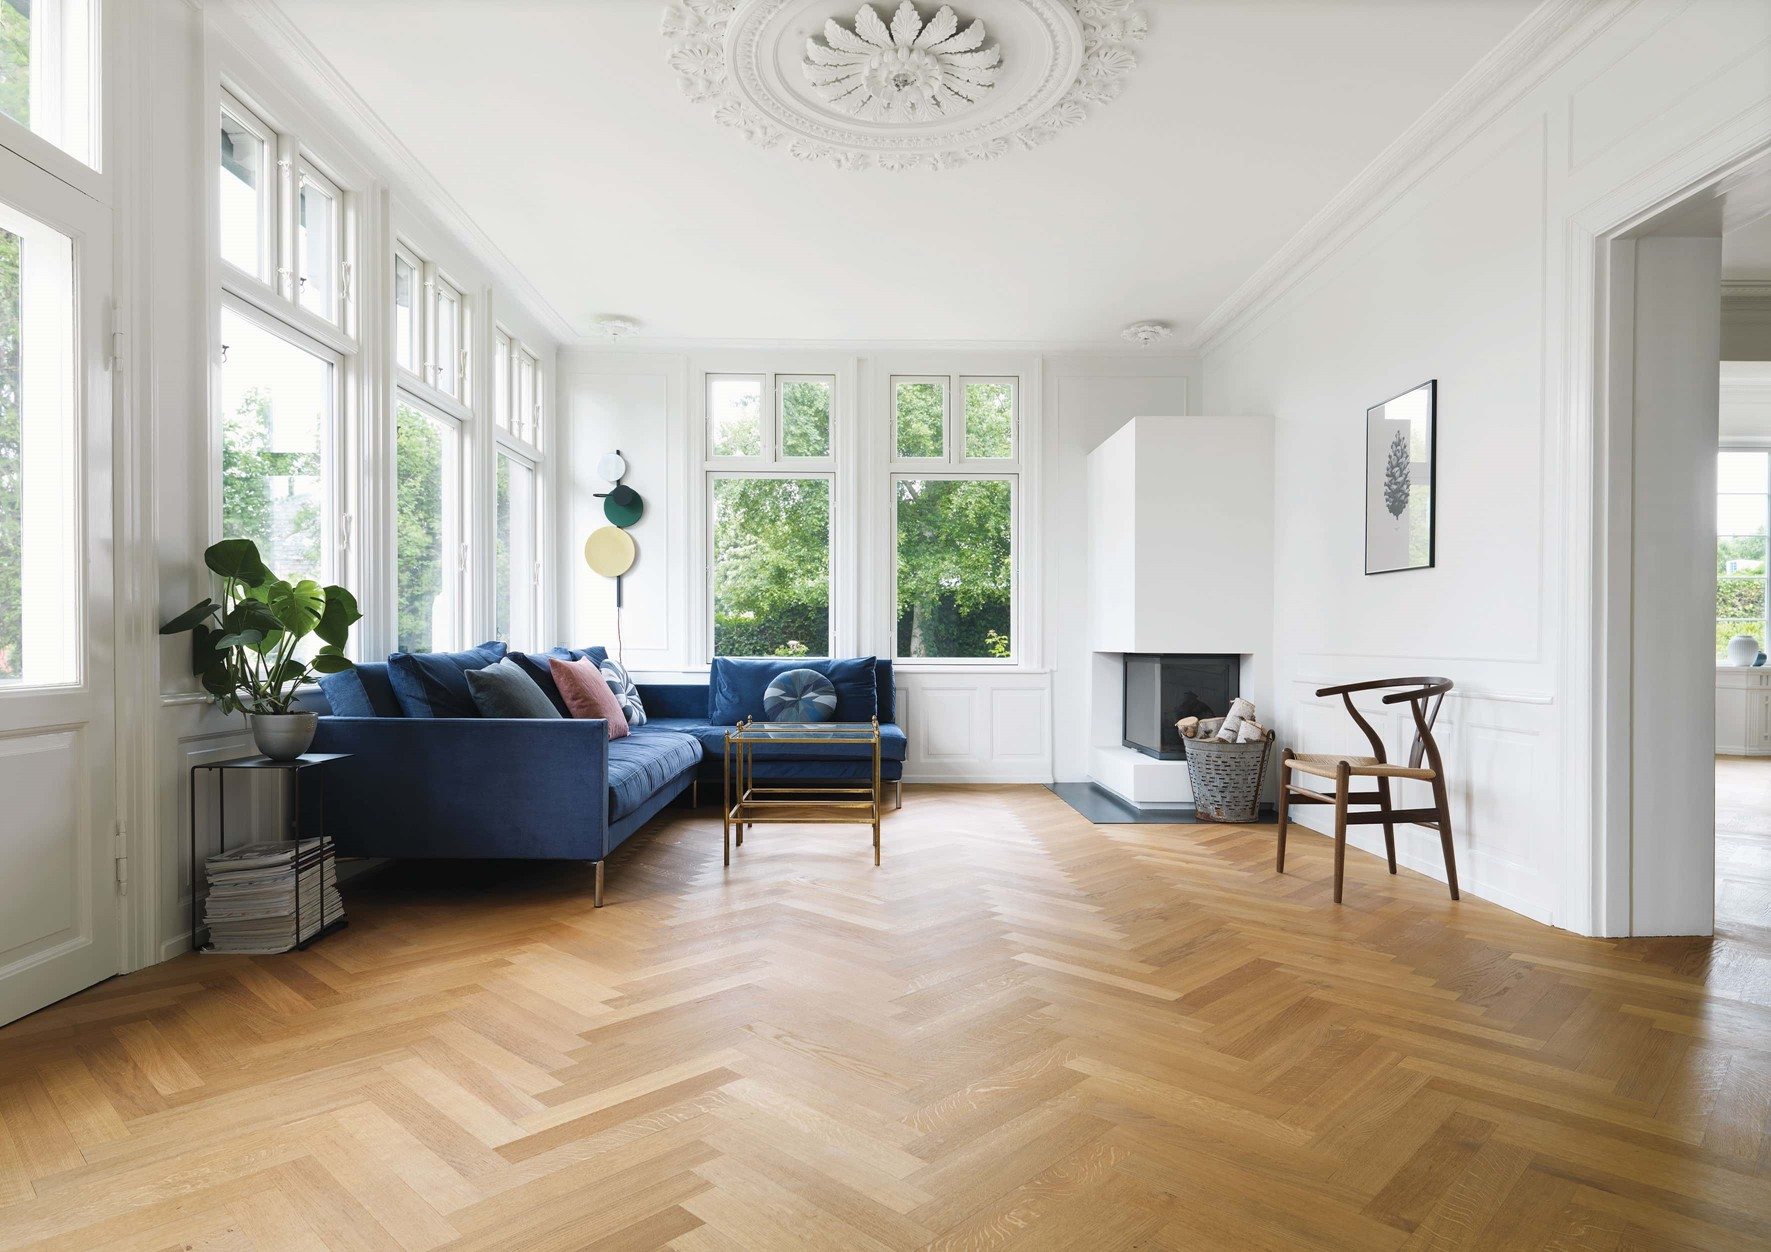 oak-herringbone-floor_natural-oil_villa-gentofte_living-room_dinesen.jpg